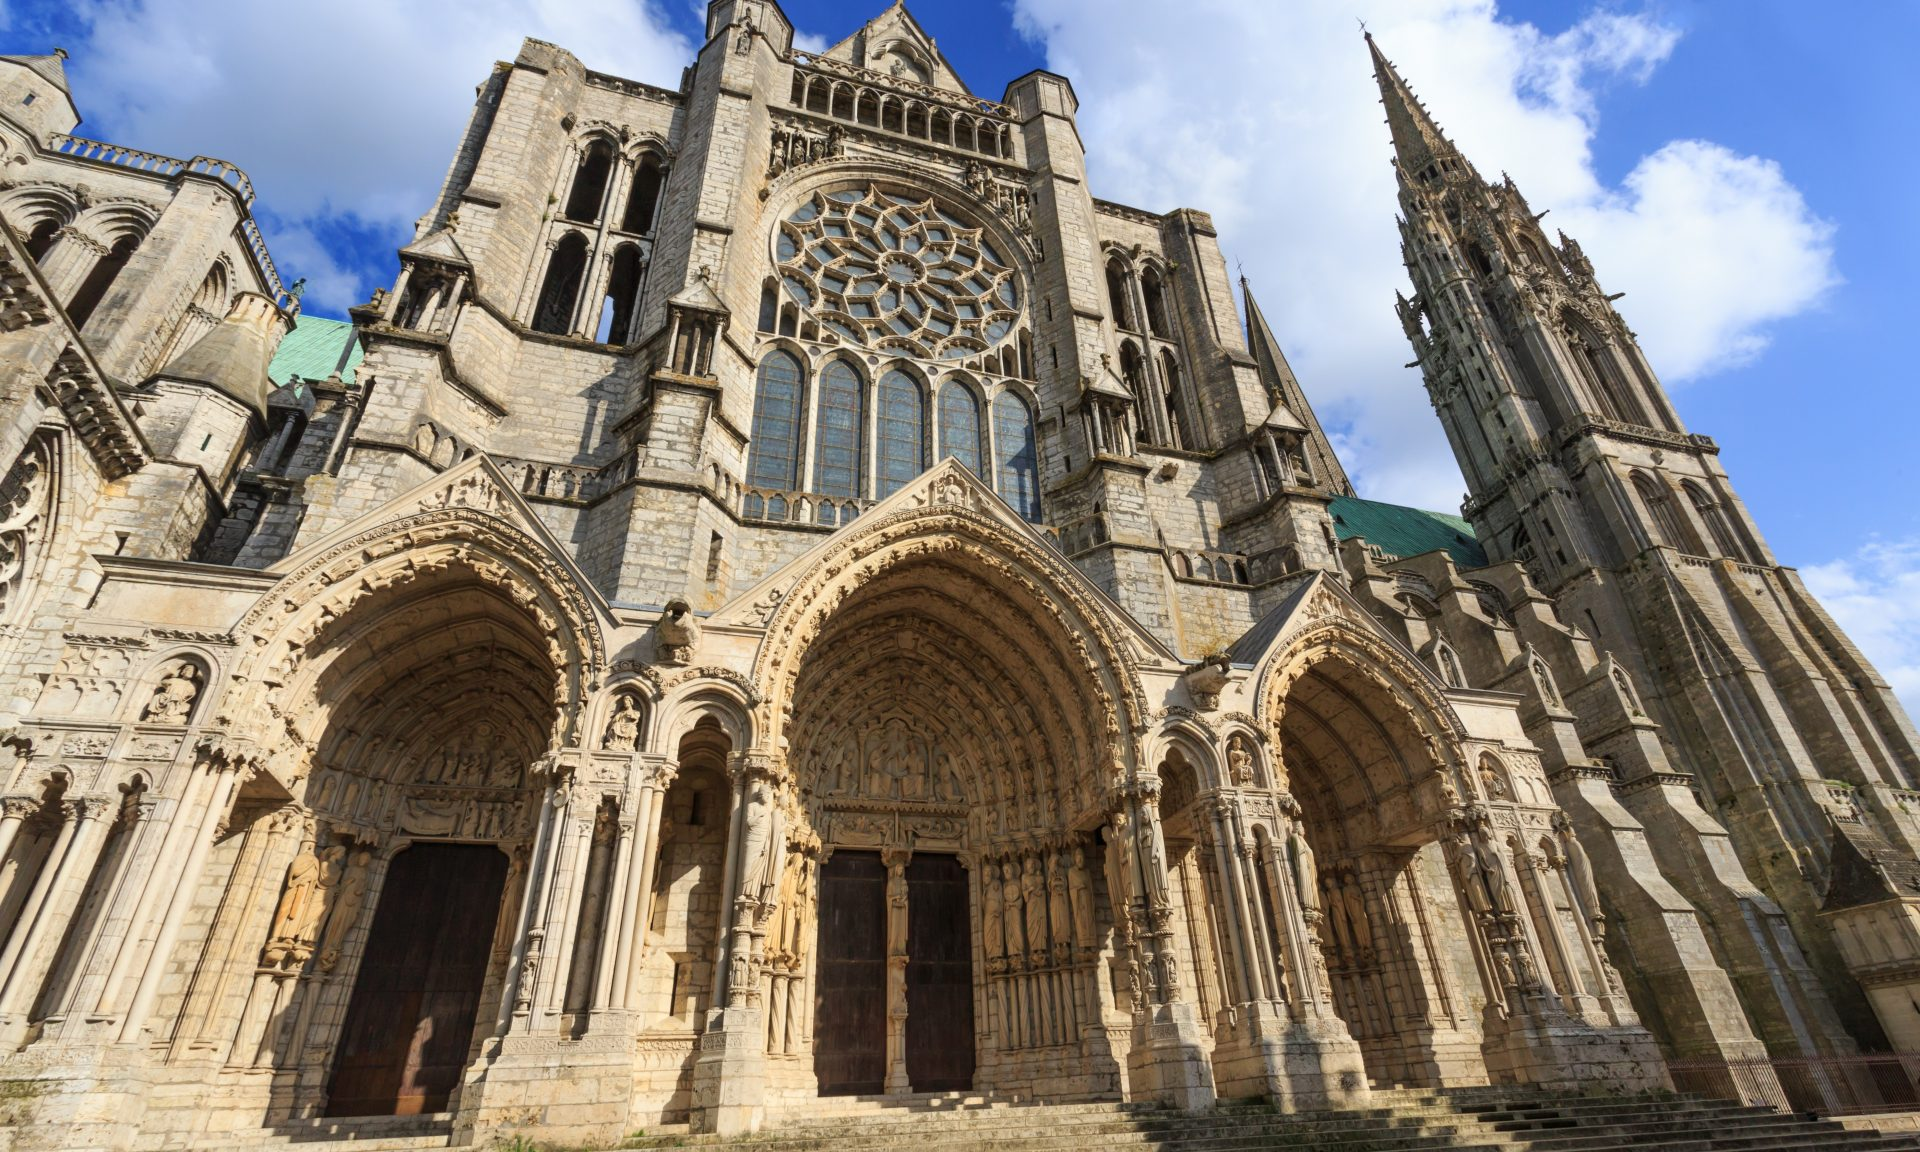 The Chartres Cathedral is a UNESCO World Heritage Site.